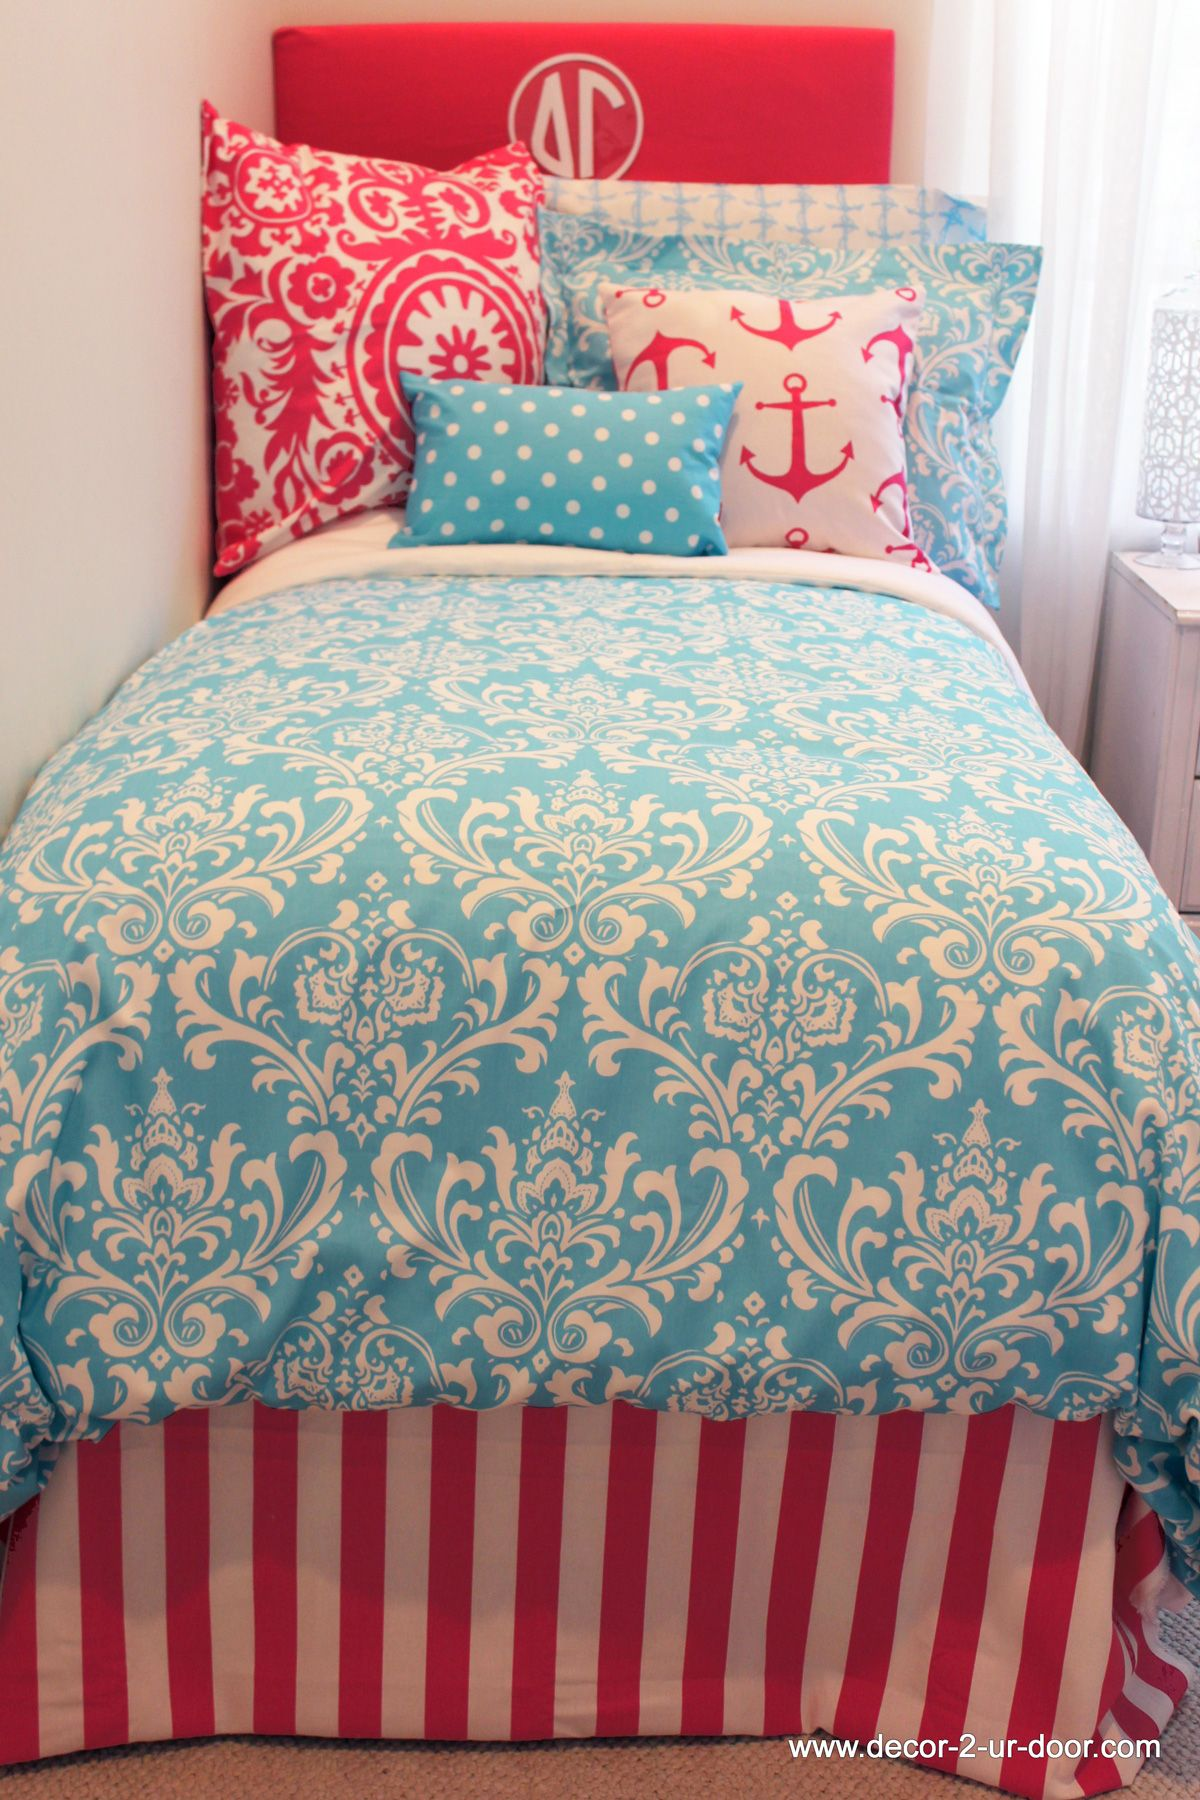 Girly Blue Duvet And Sham Set With Design Ur Own Pink Accessories And Pillows Coral And Te College Dorm Room Bedding Dorm Room Bedding College Dorm Room Decor